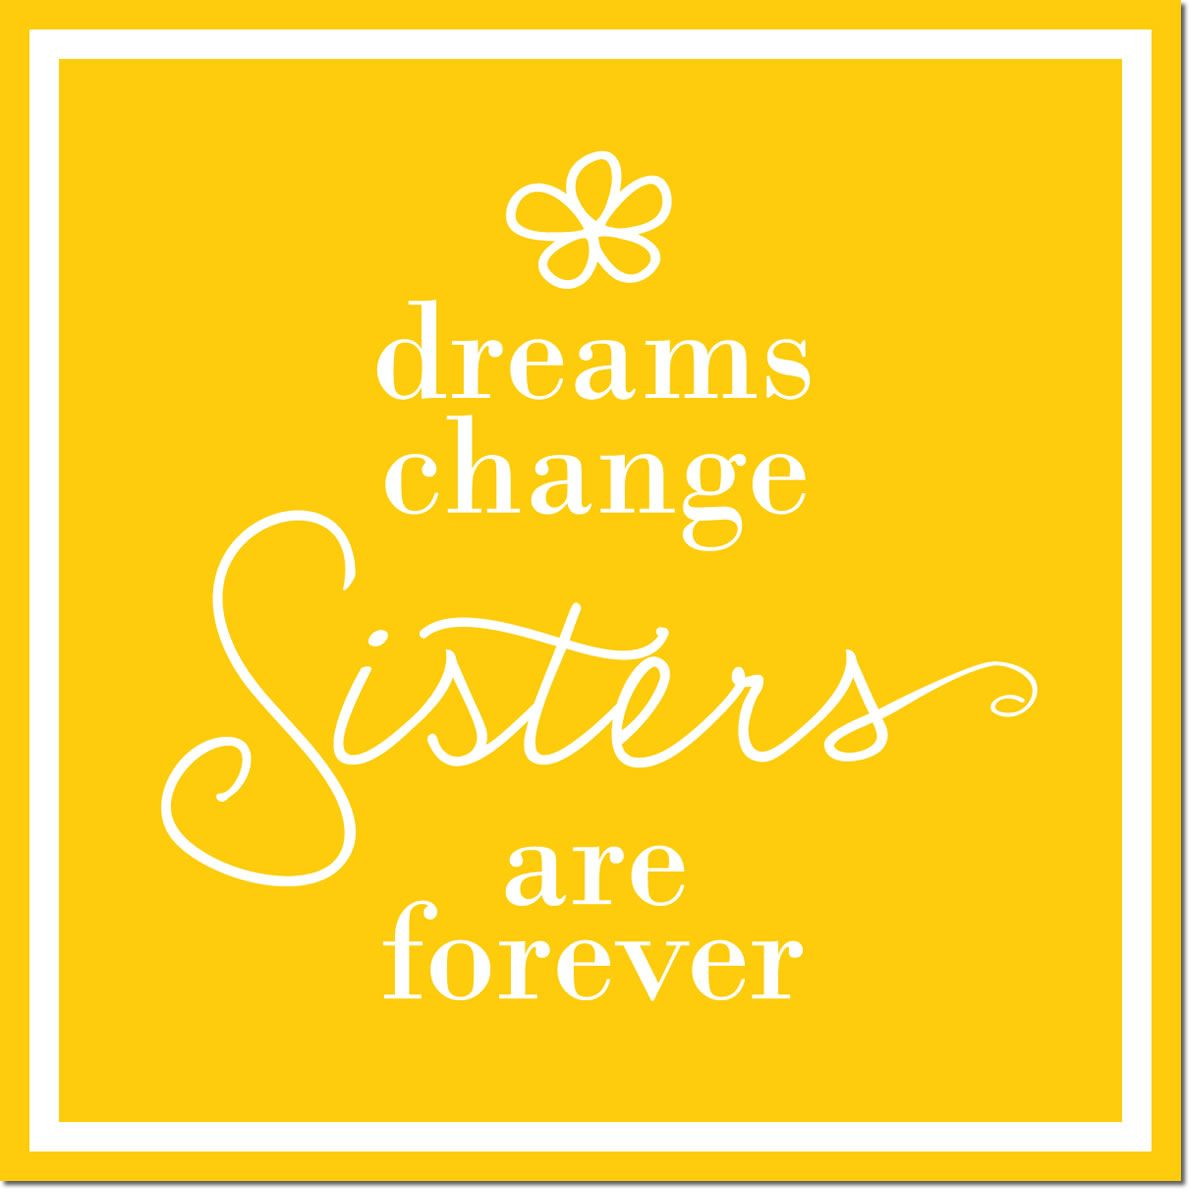 Pin By Laura Tuccitto On Inspiration In 2020 Sorority Sister Quotes Sister Quotes Love My Sister